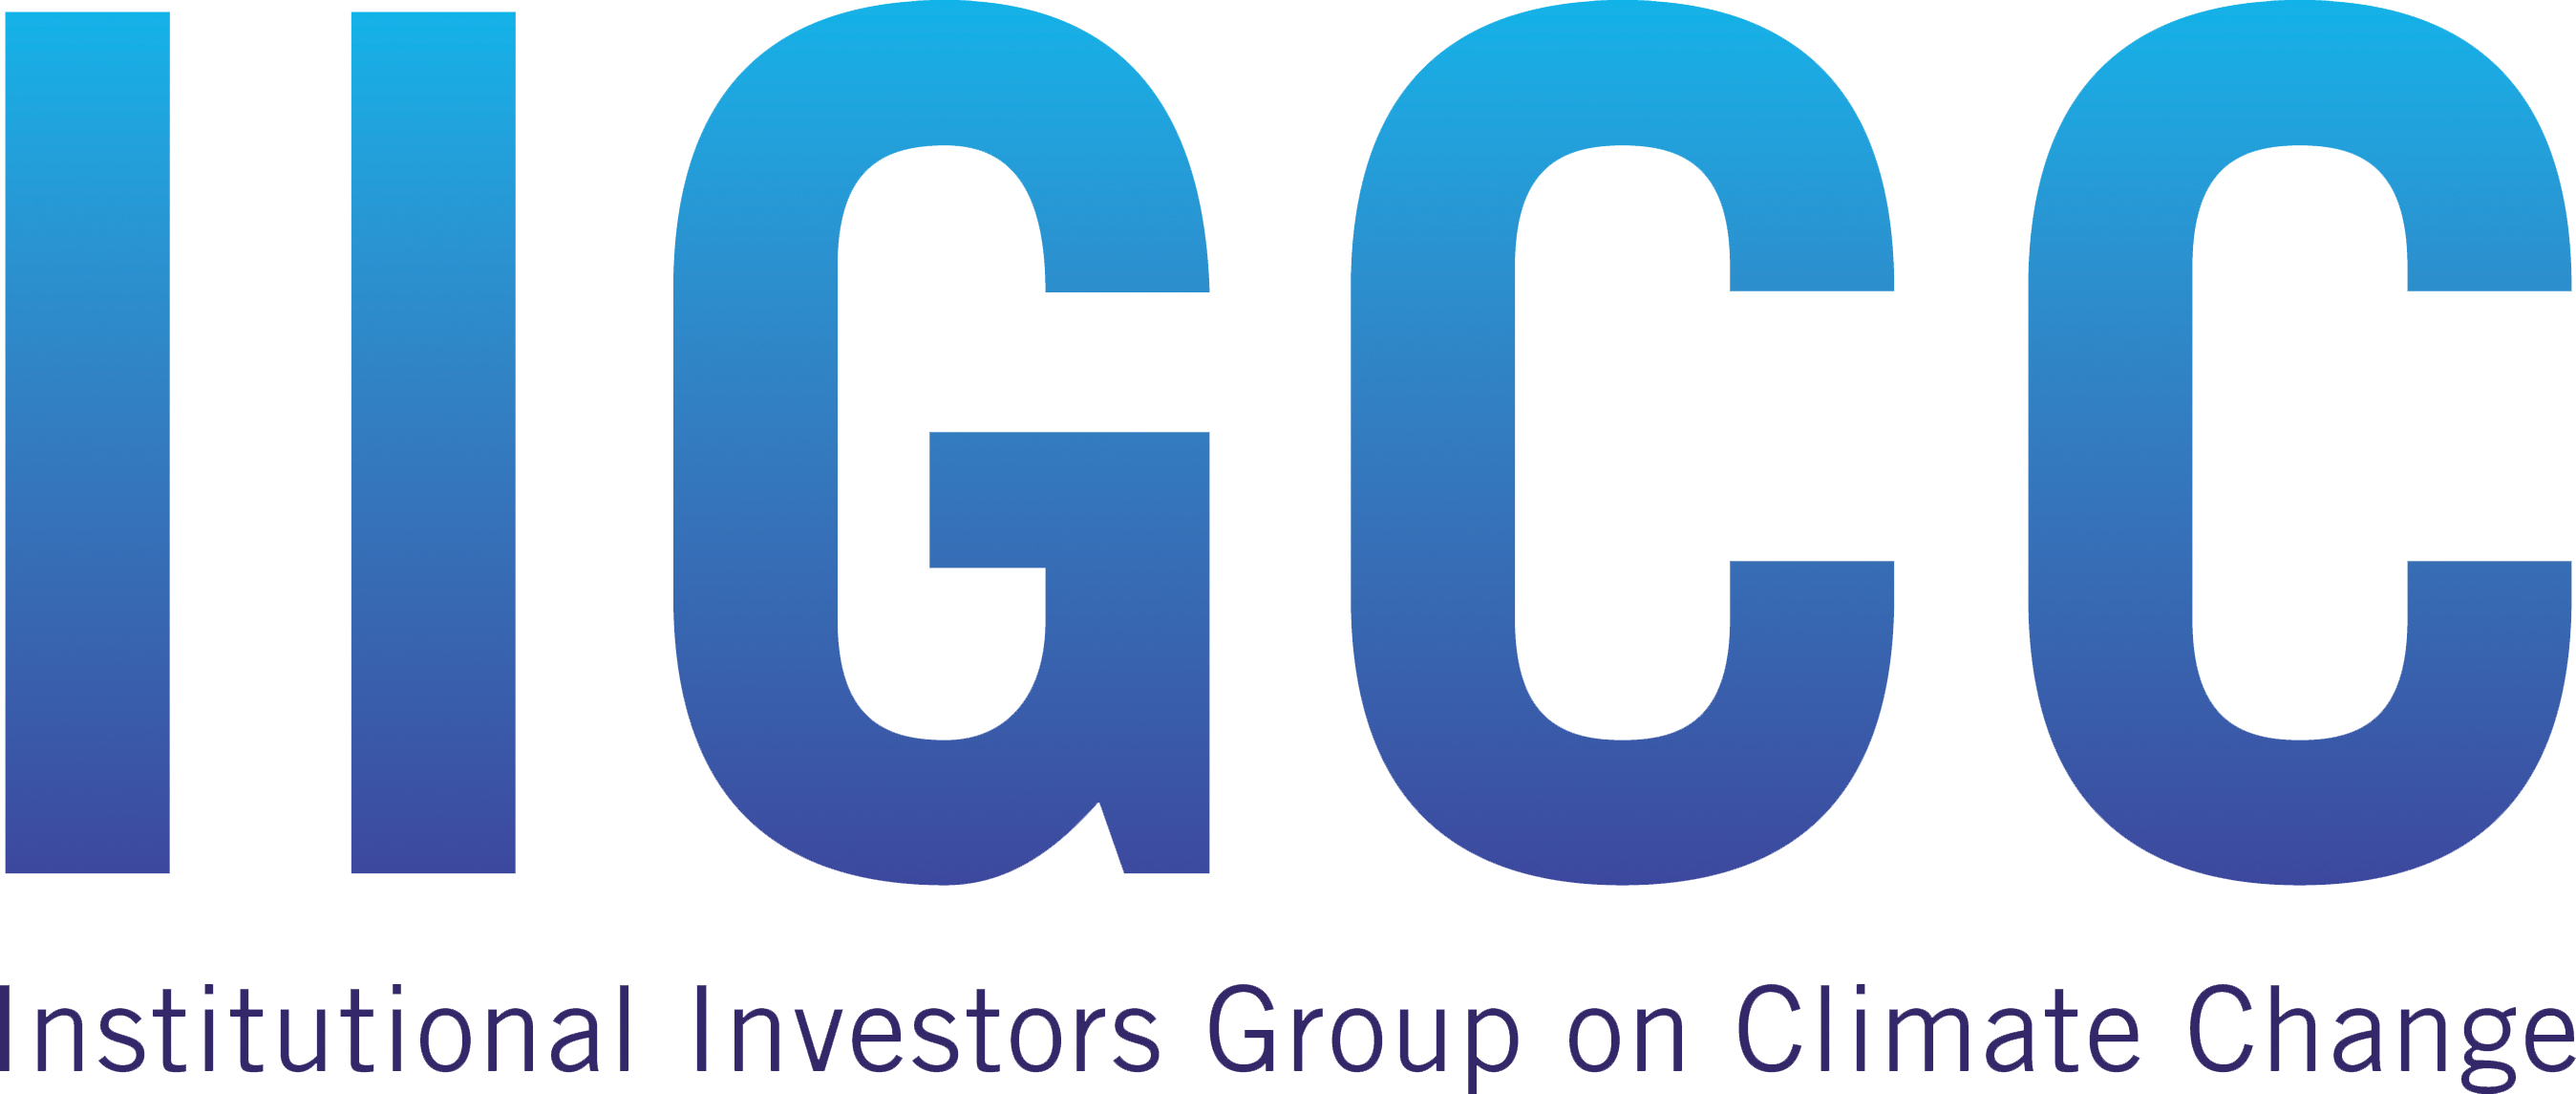 institutional investors group on climate change logo